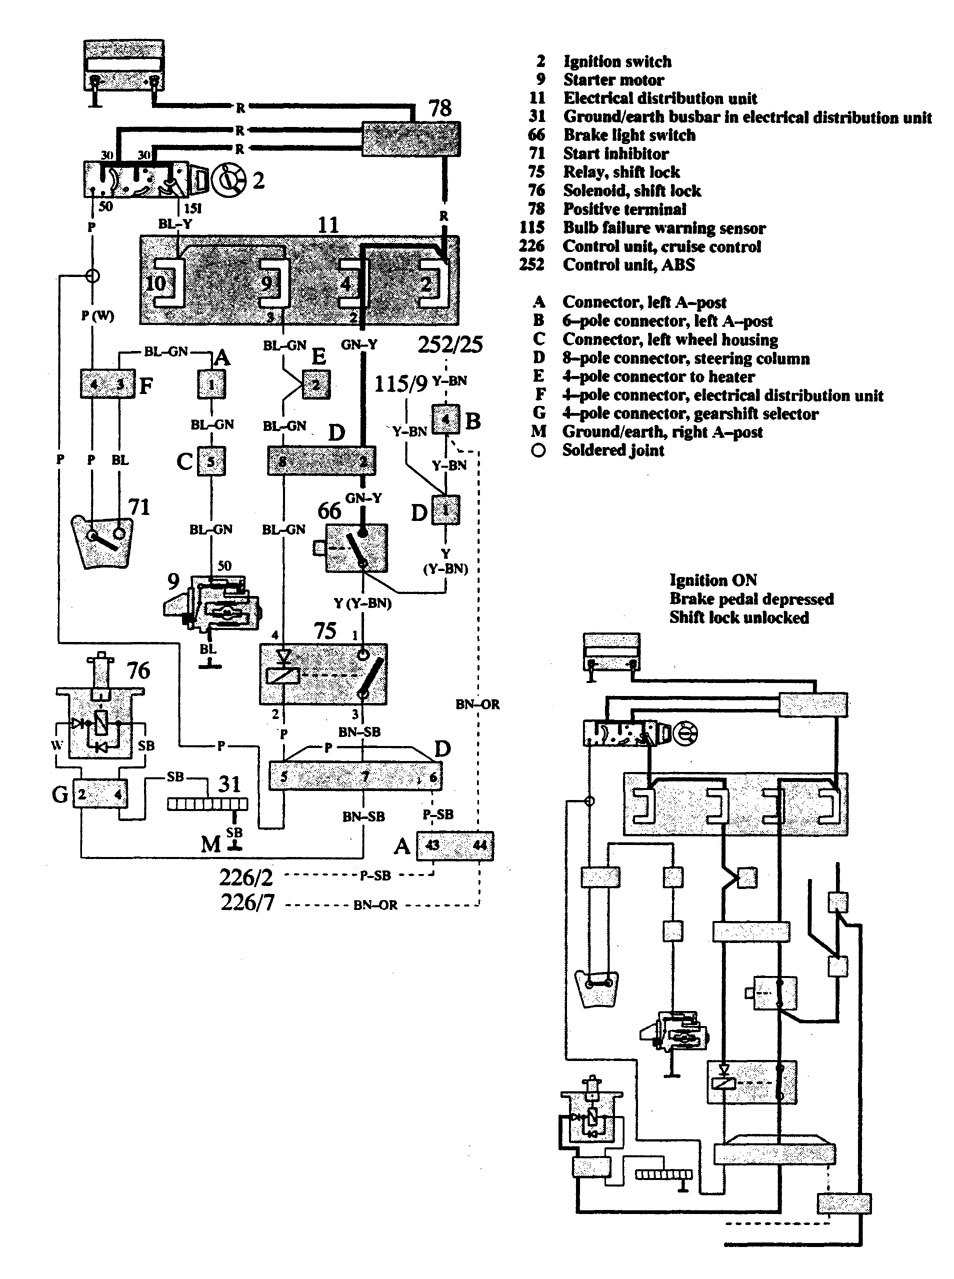 volvo 960 radio wiring diagram imageresizertool com Cluster Diagram 1985 Wagoneer volvo 940 wiring diagram shift interlock 1991